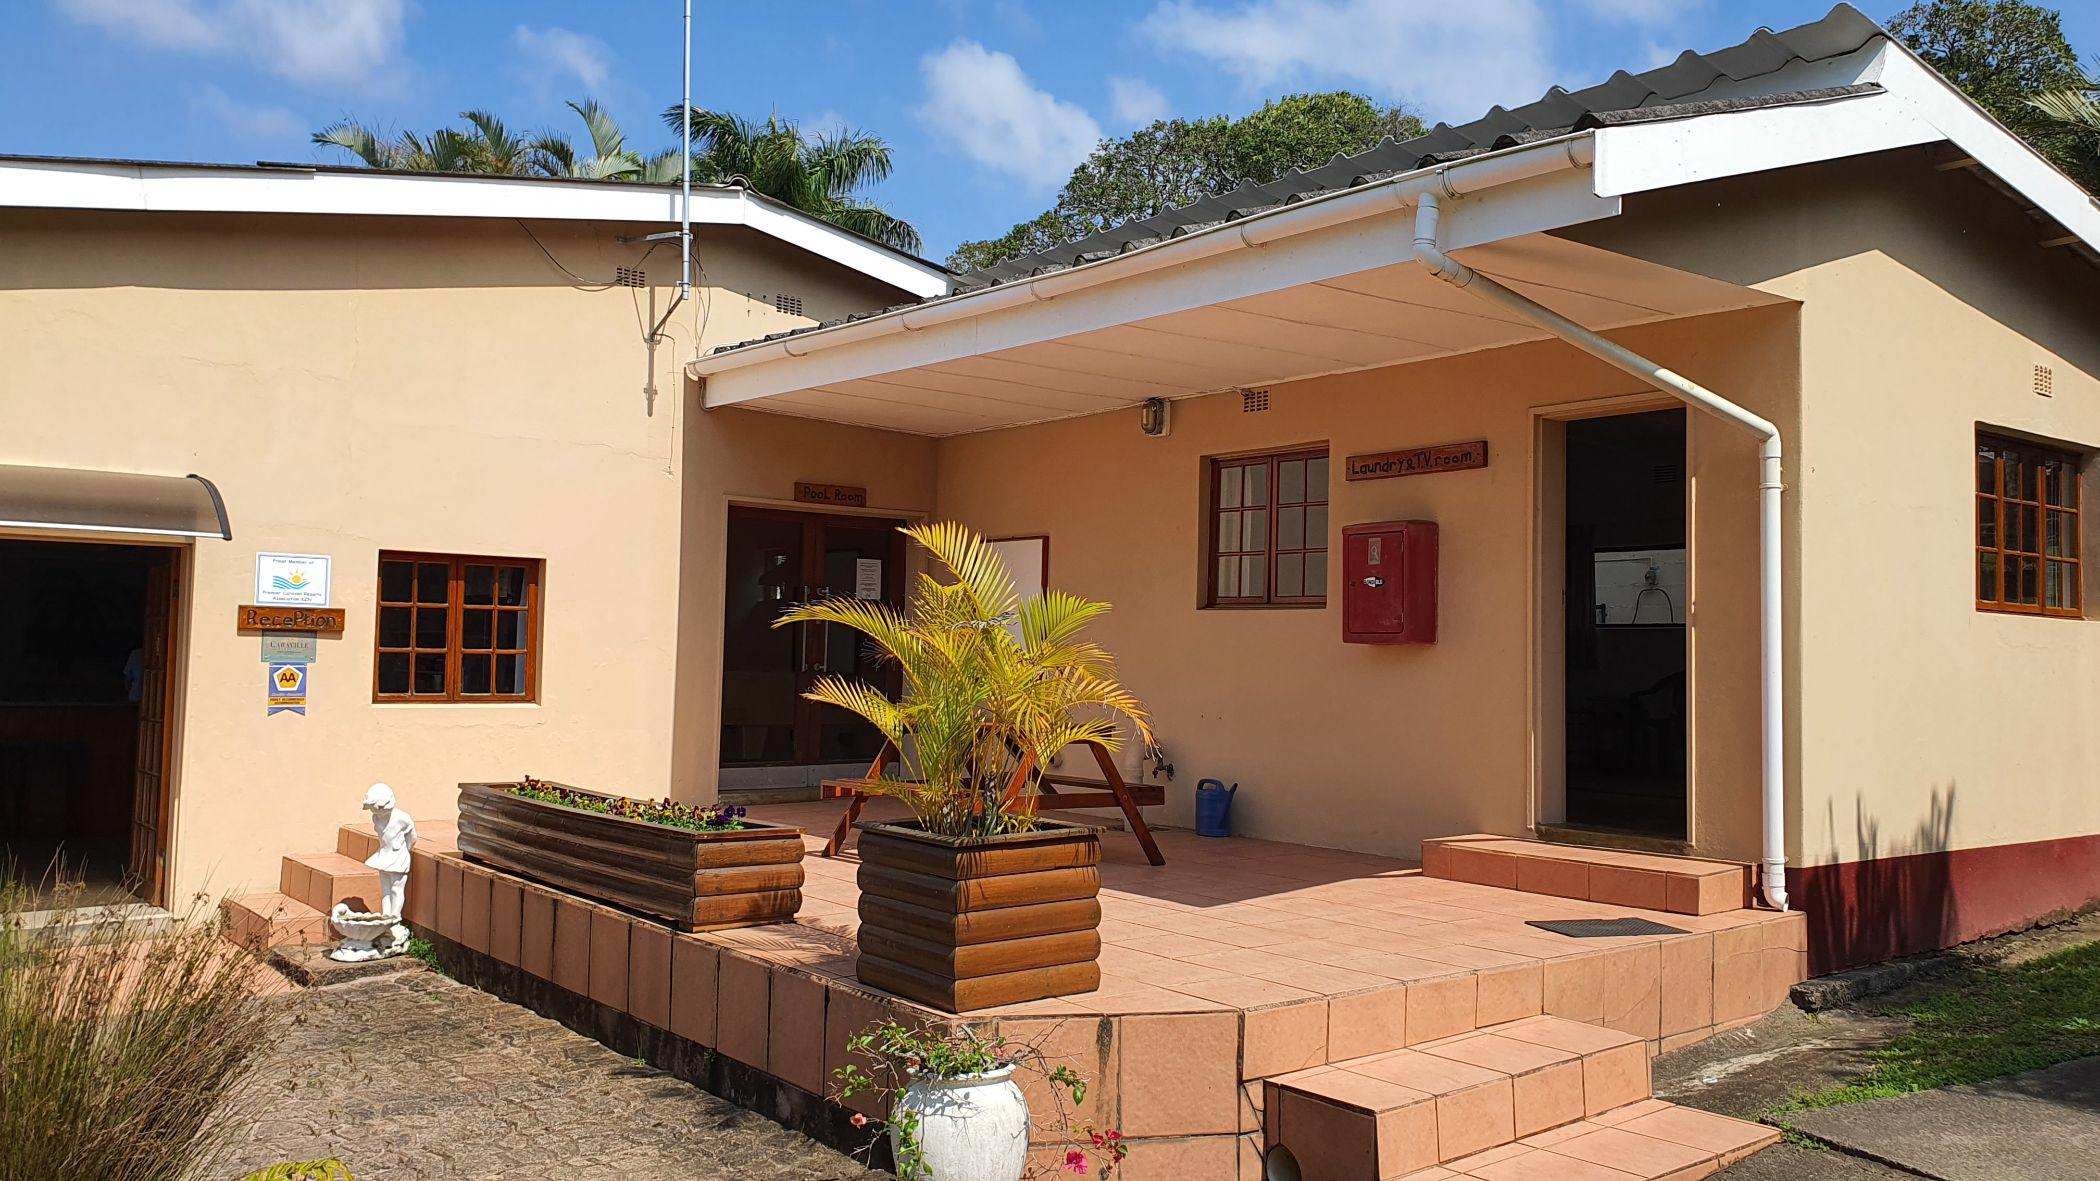 25 guest room beach resort for sale in Southbroom